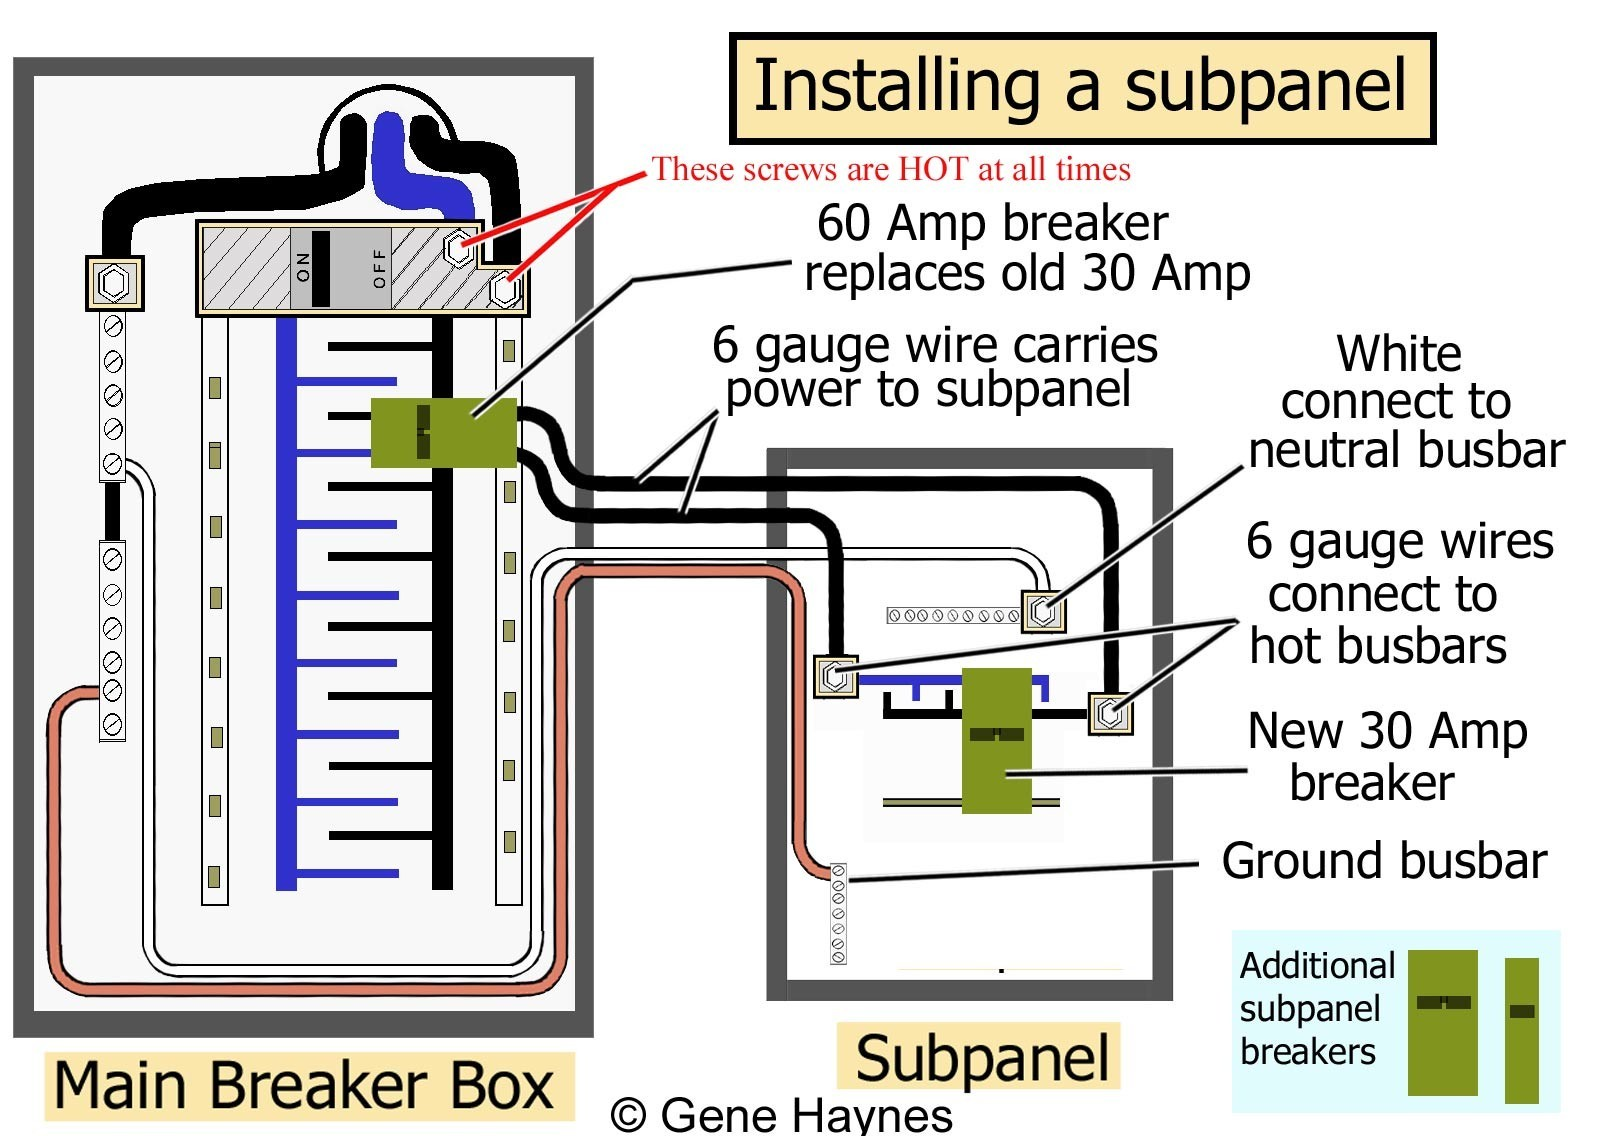 125 Amp Sub Panel Wiring Diagram Image And